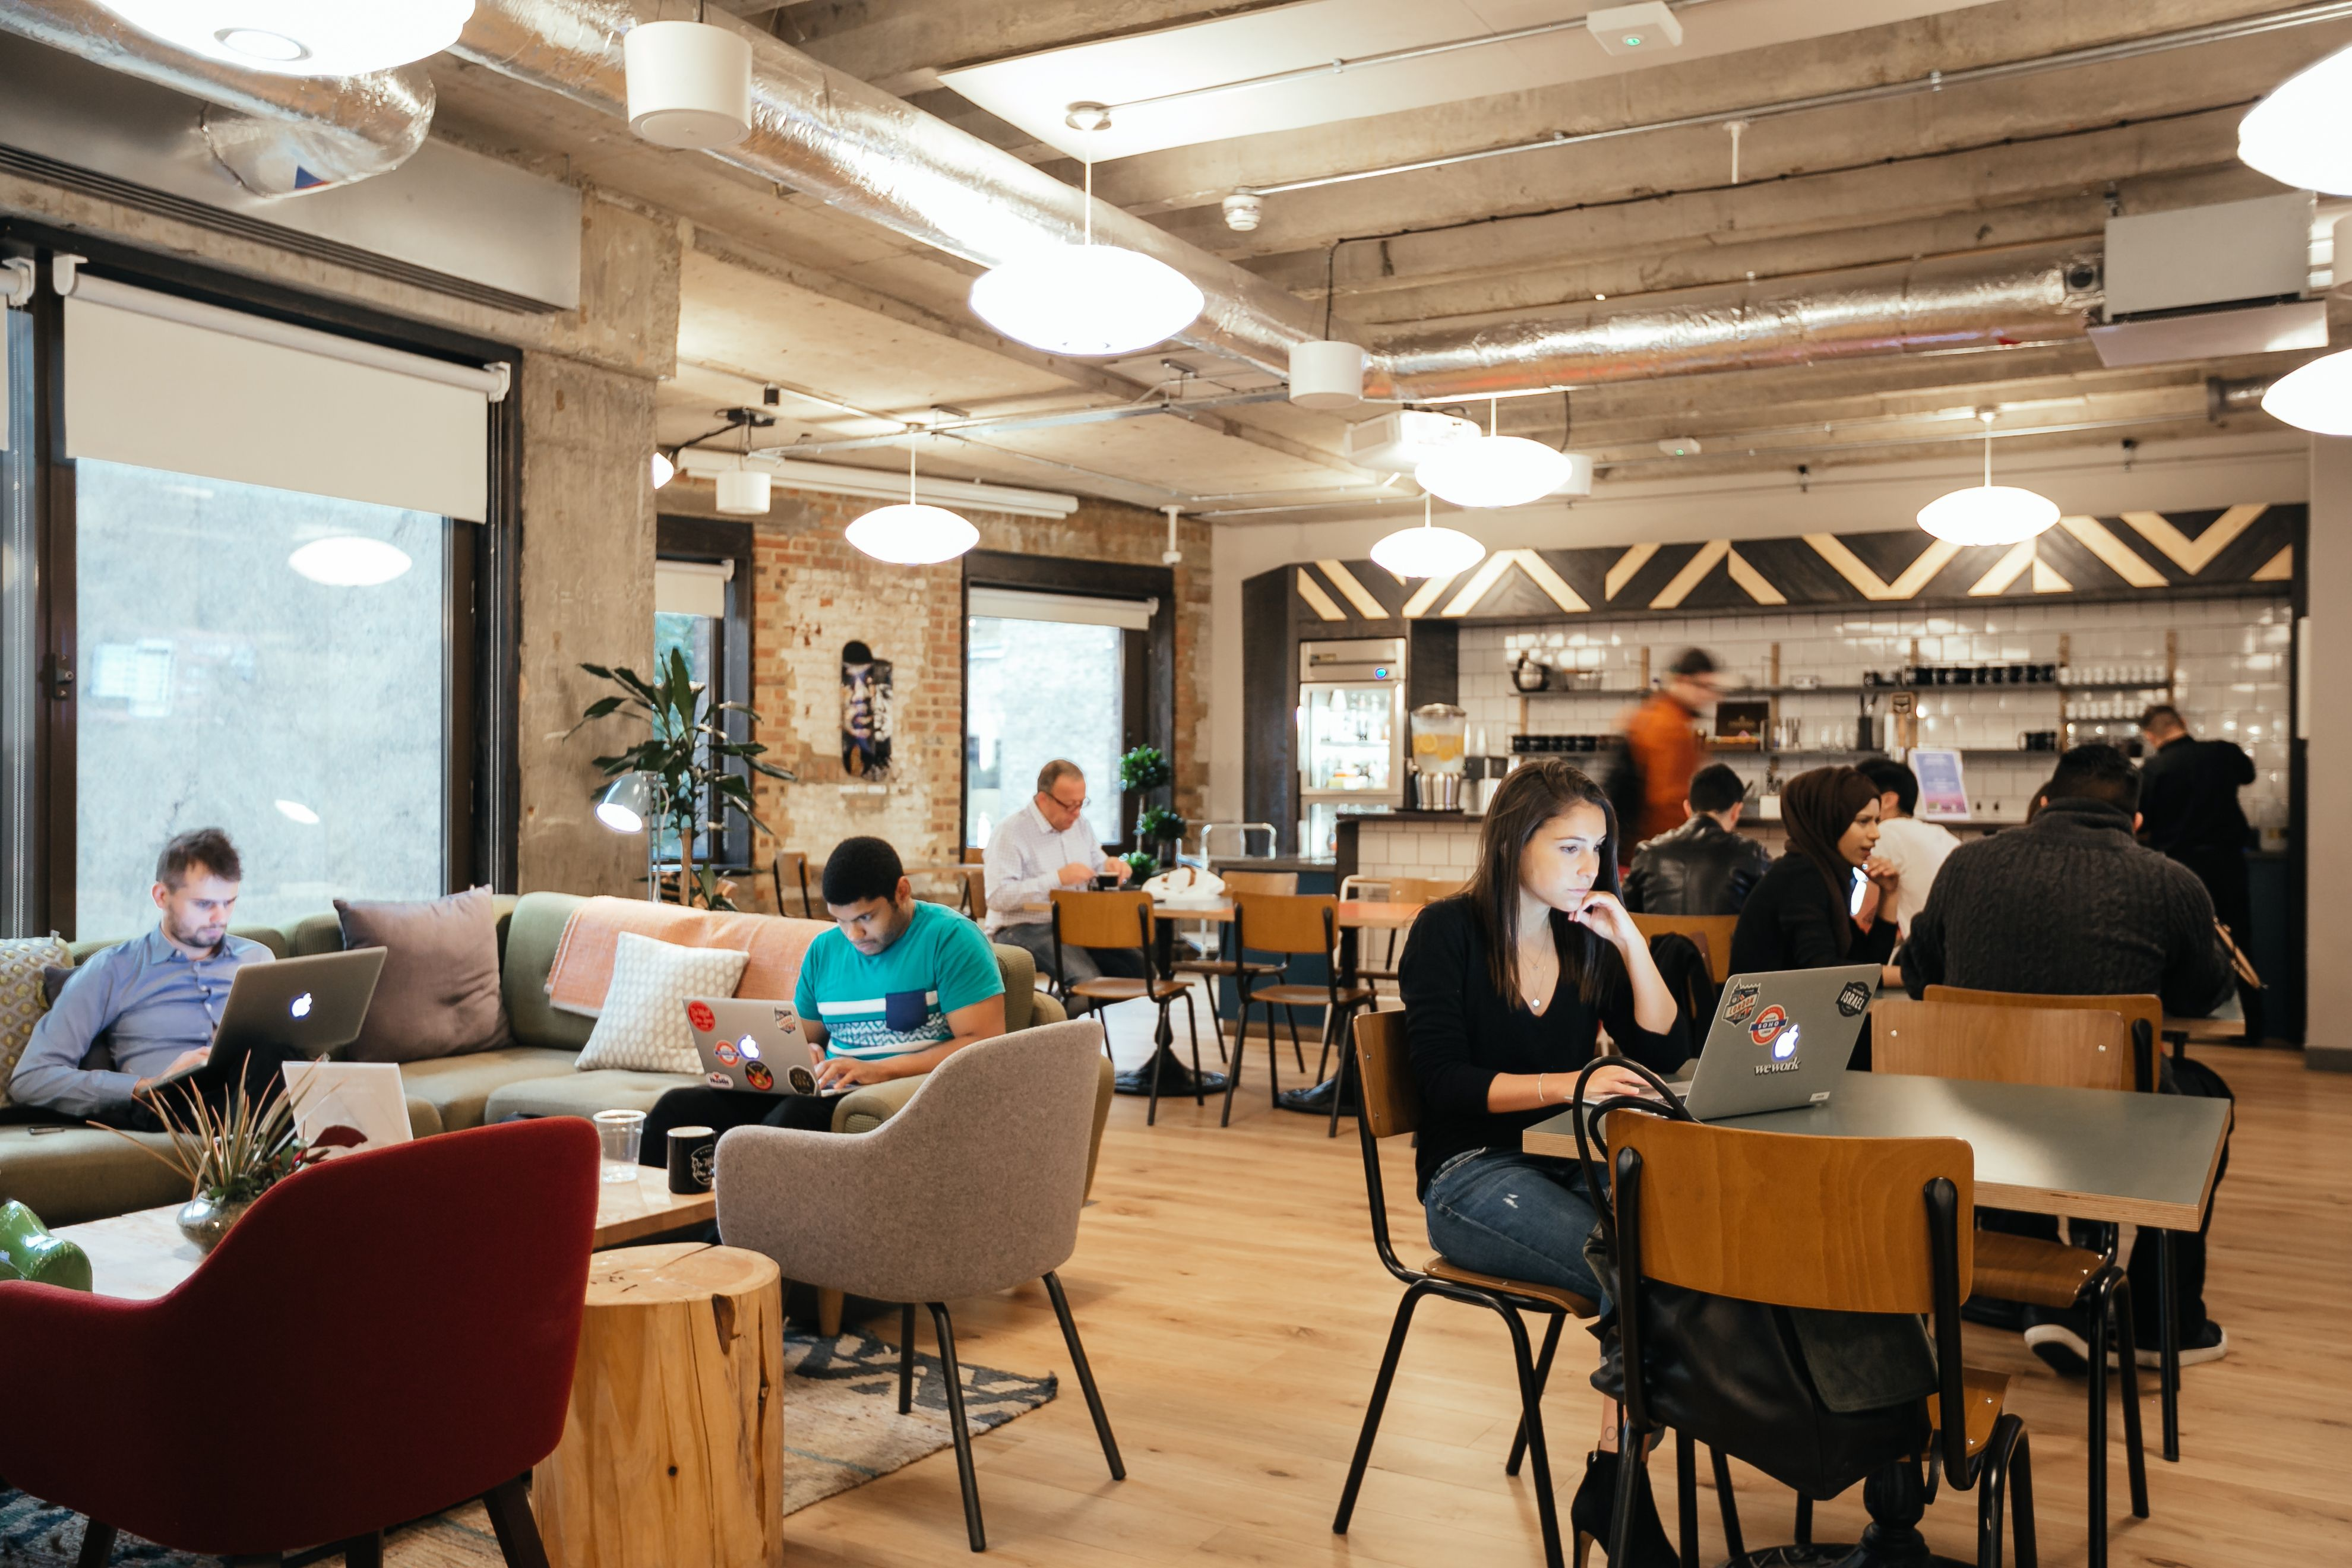 Wework dream office am nagement bureau bureau idee bureau - Partage de bureau ubuntu ...